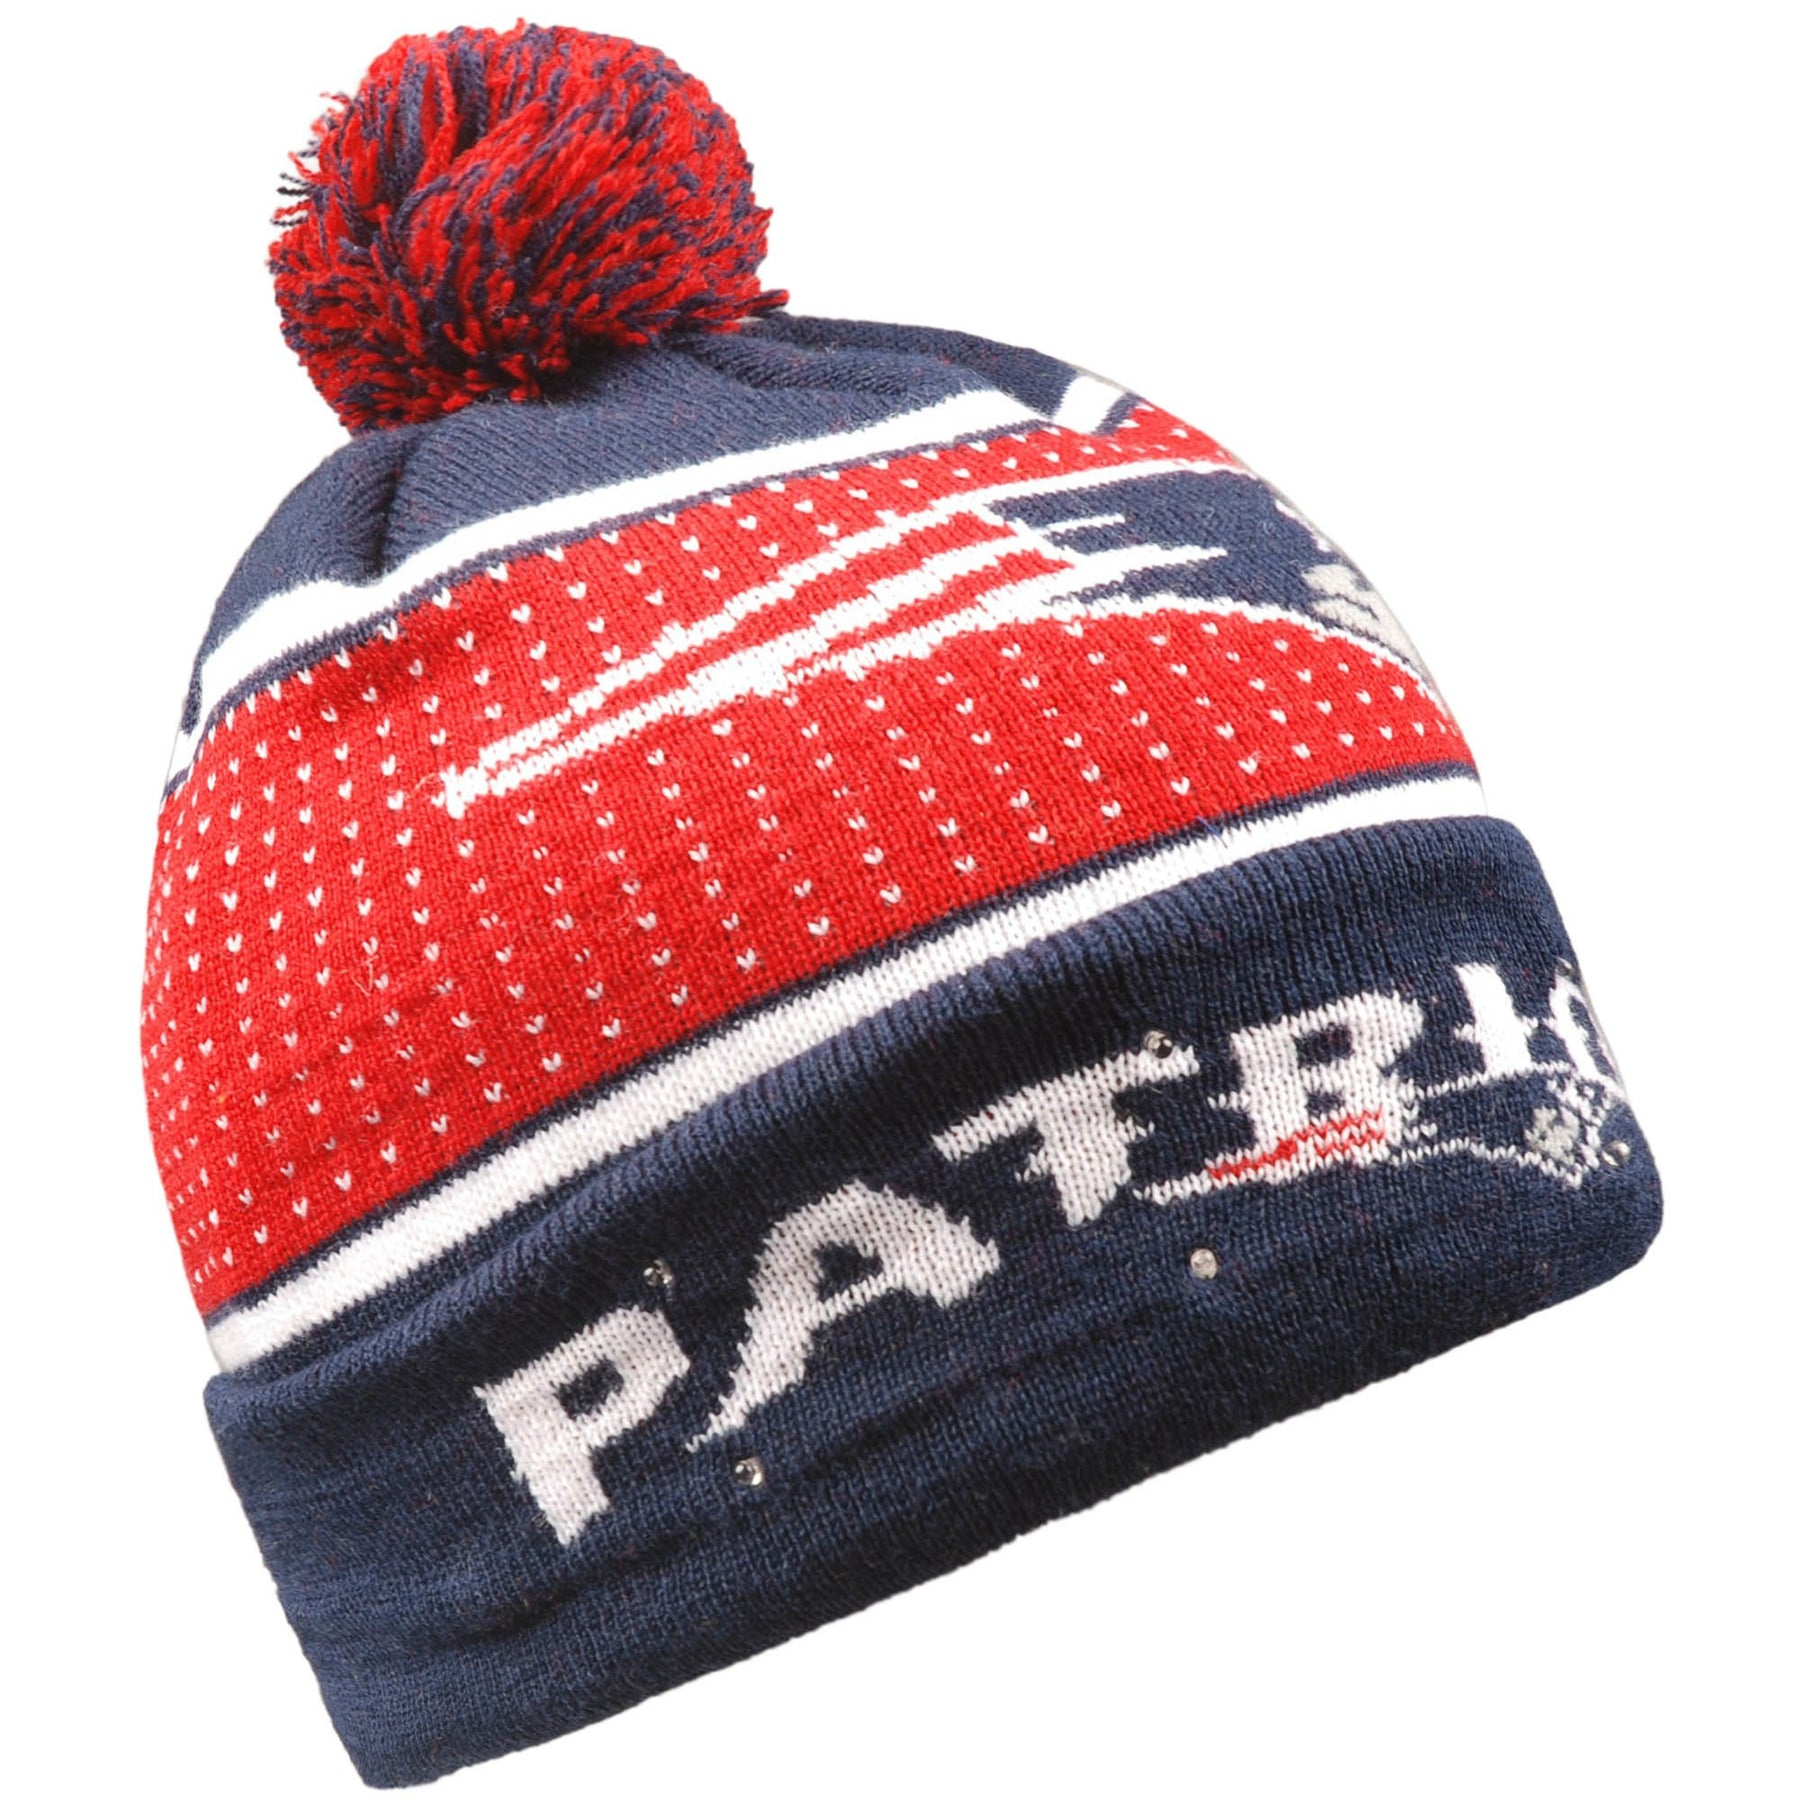 869a8773e5b New England Patriots Light Up Knit Beanie Hat – Dynasty Sports   Framing